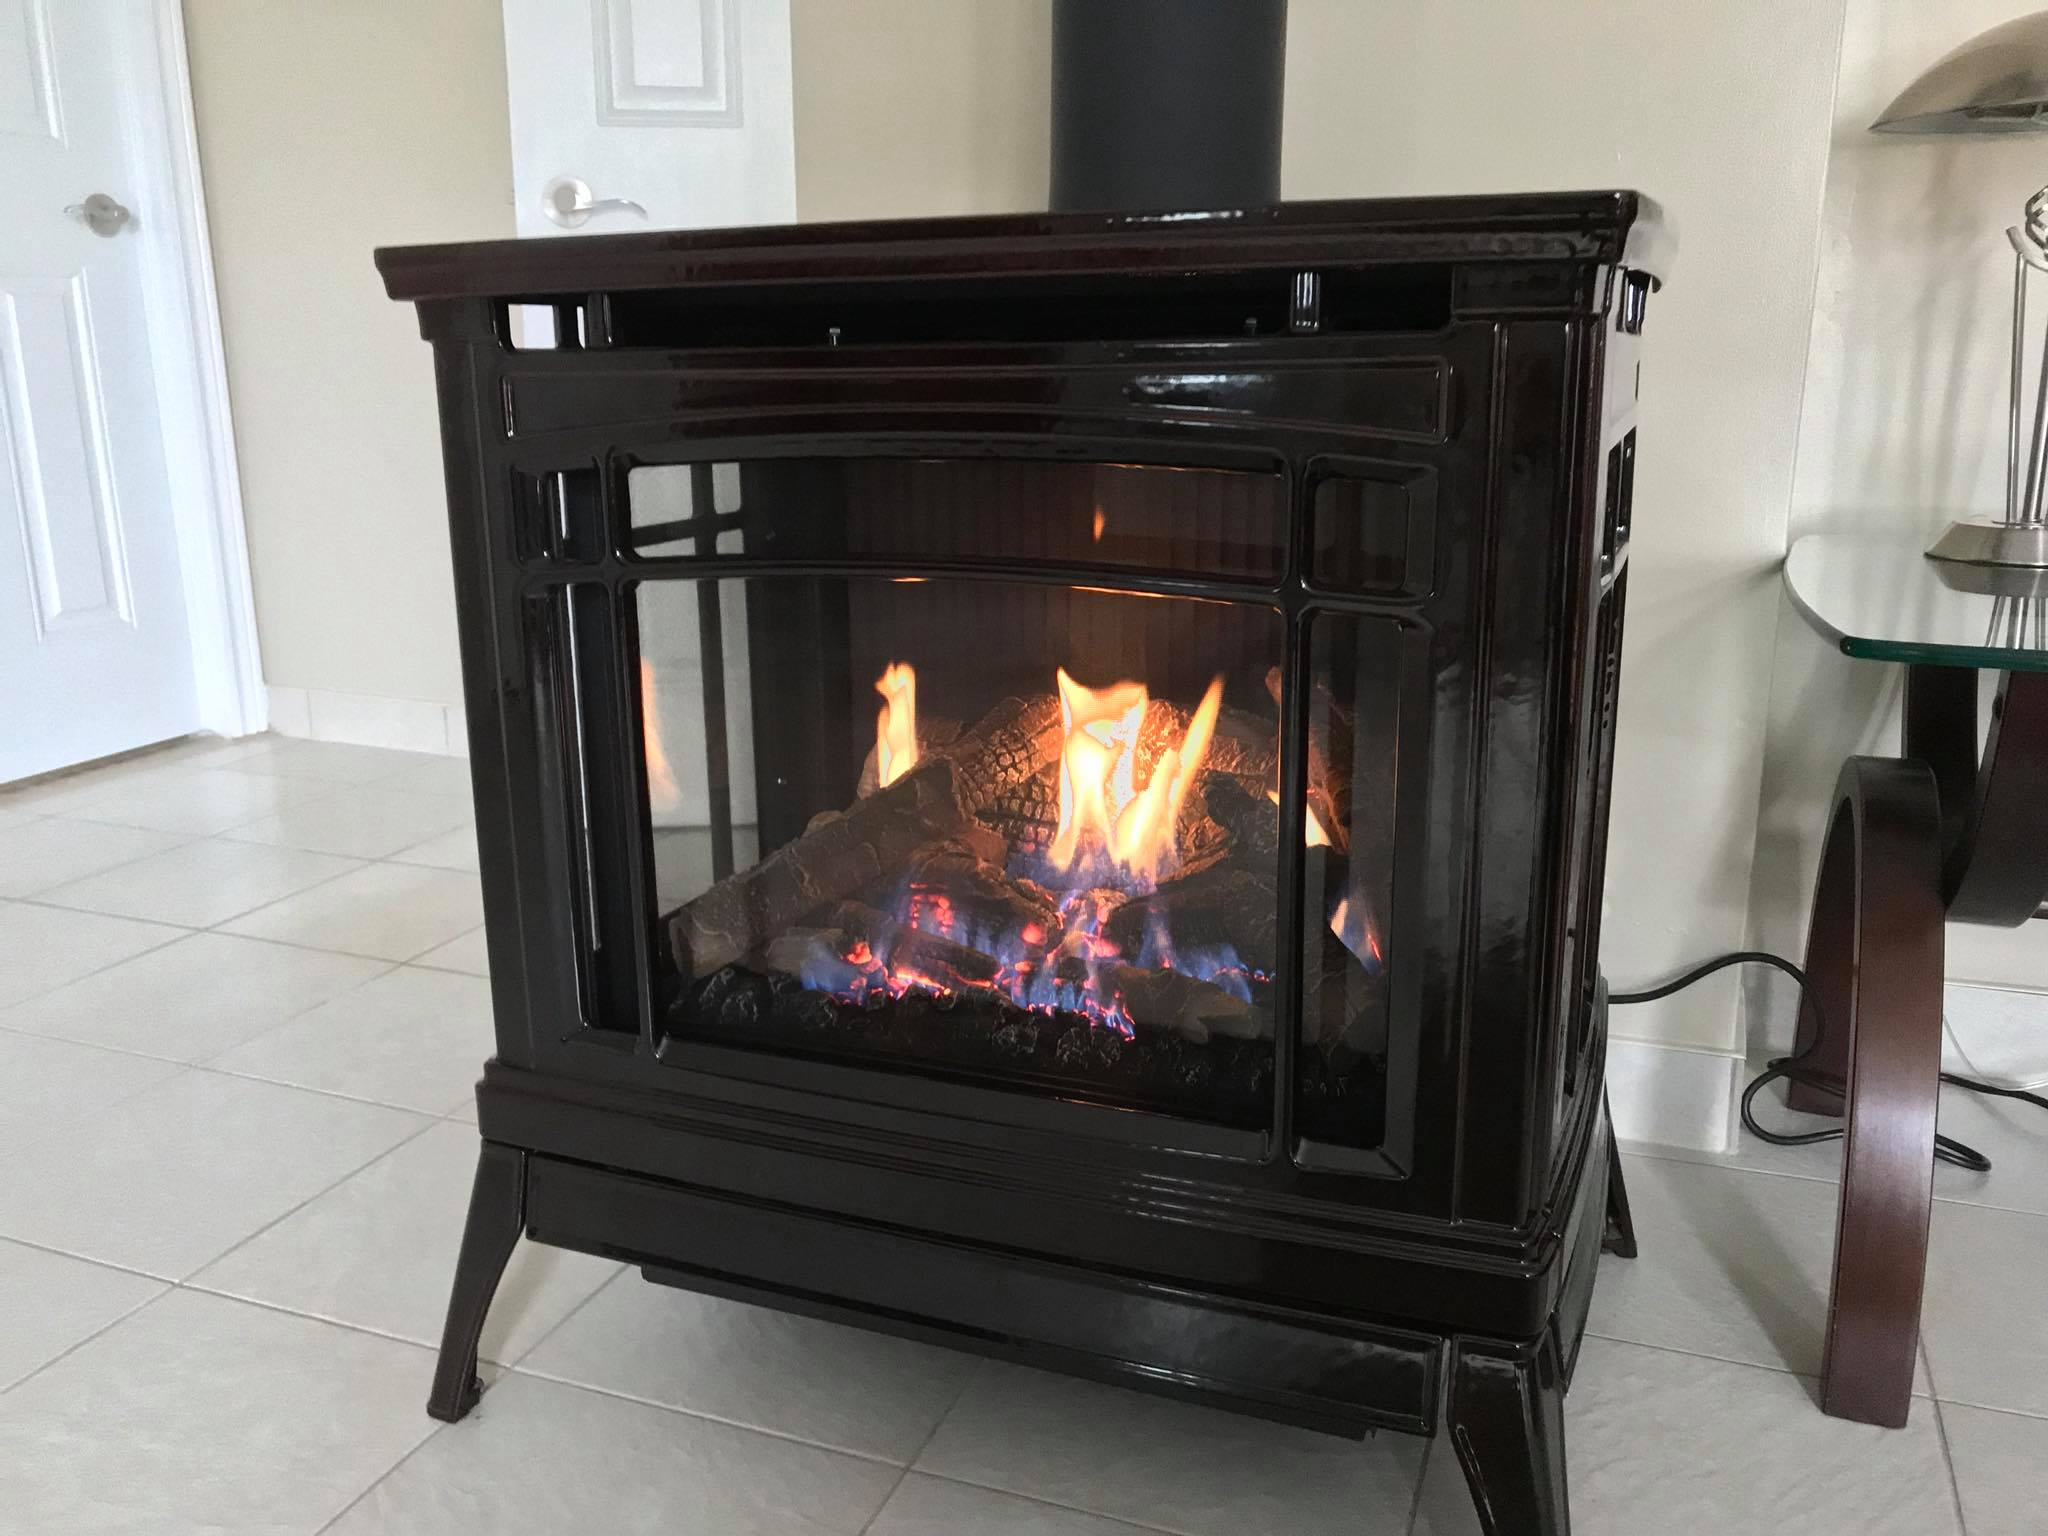 Propane Fireplace Cleaning Natural Gas Fireplace Cleaning And Maintenance Safe Home